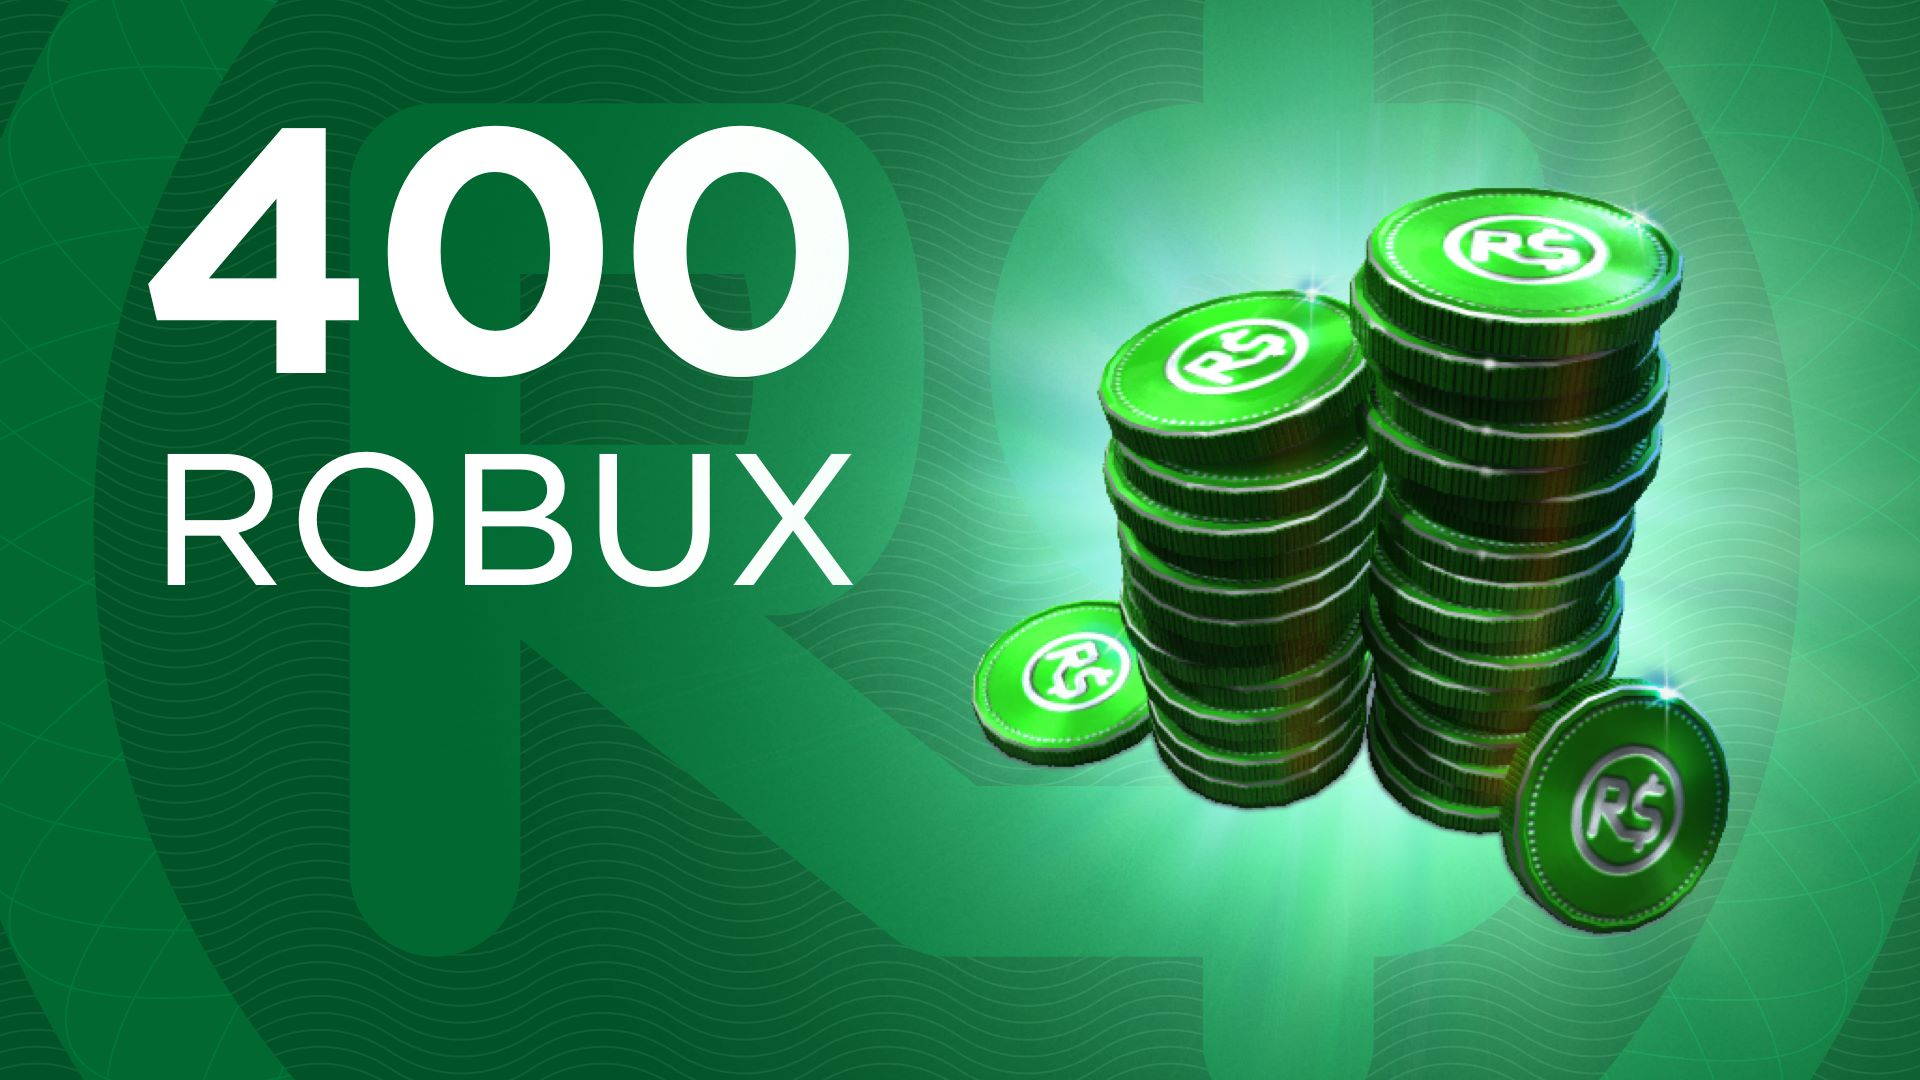 Buy 400 Robux For Xbox Microsoft Store Steam Wallet Idr 250 Digital Code